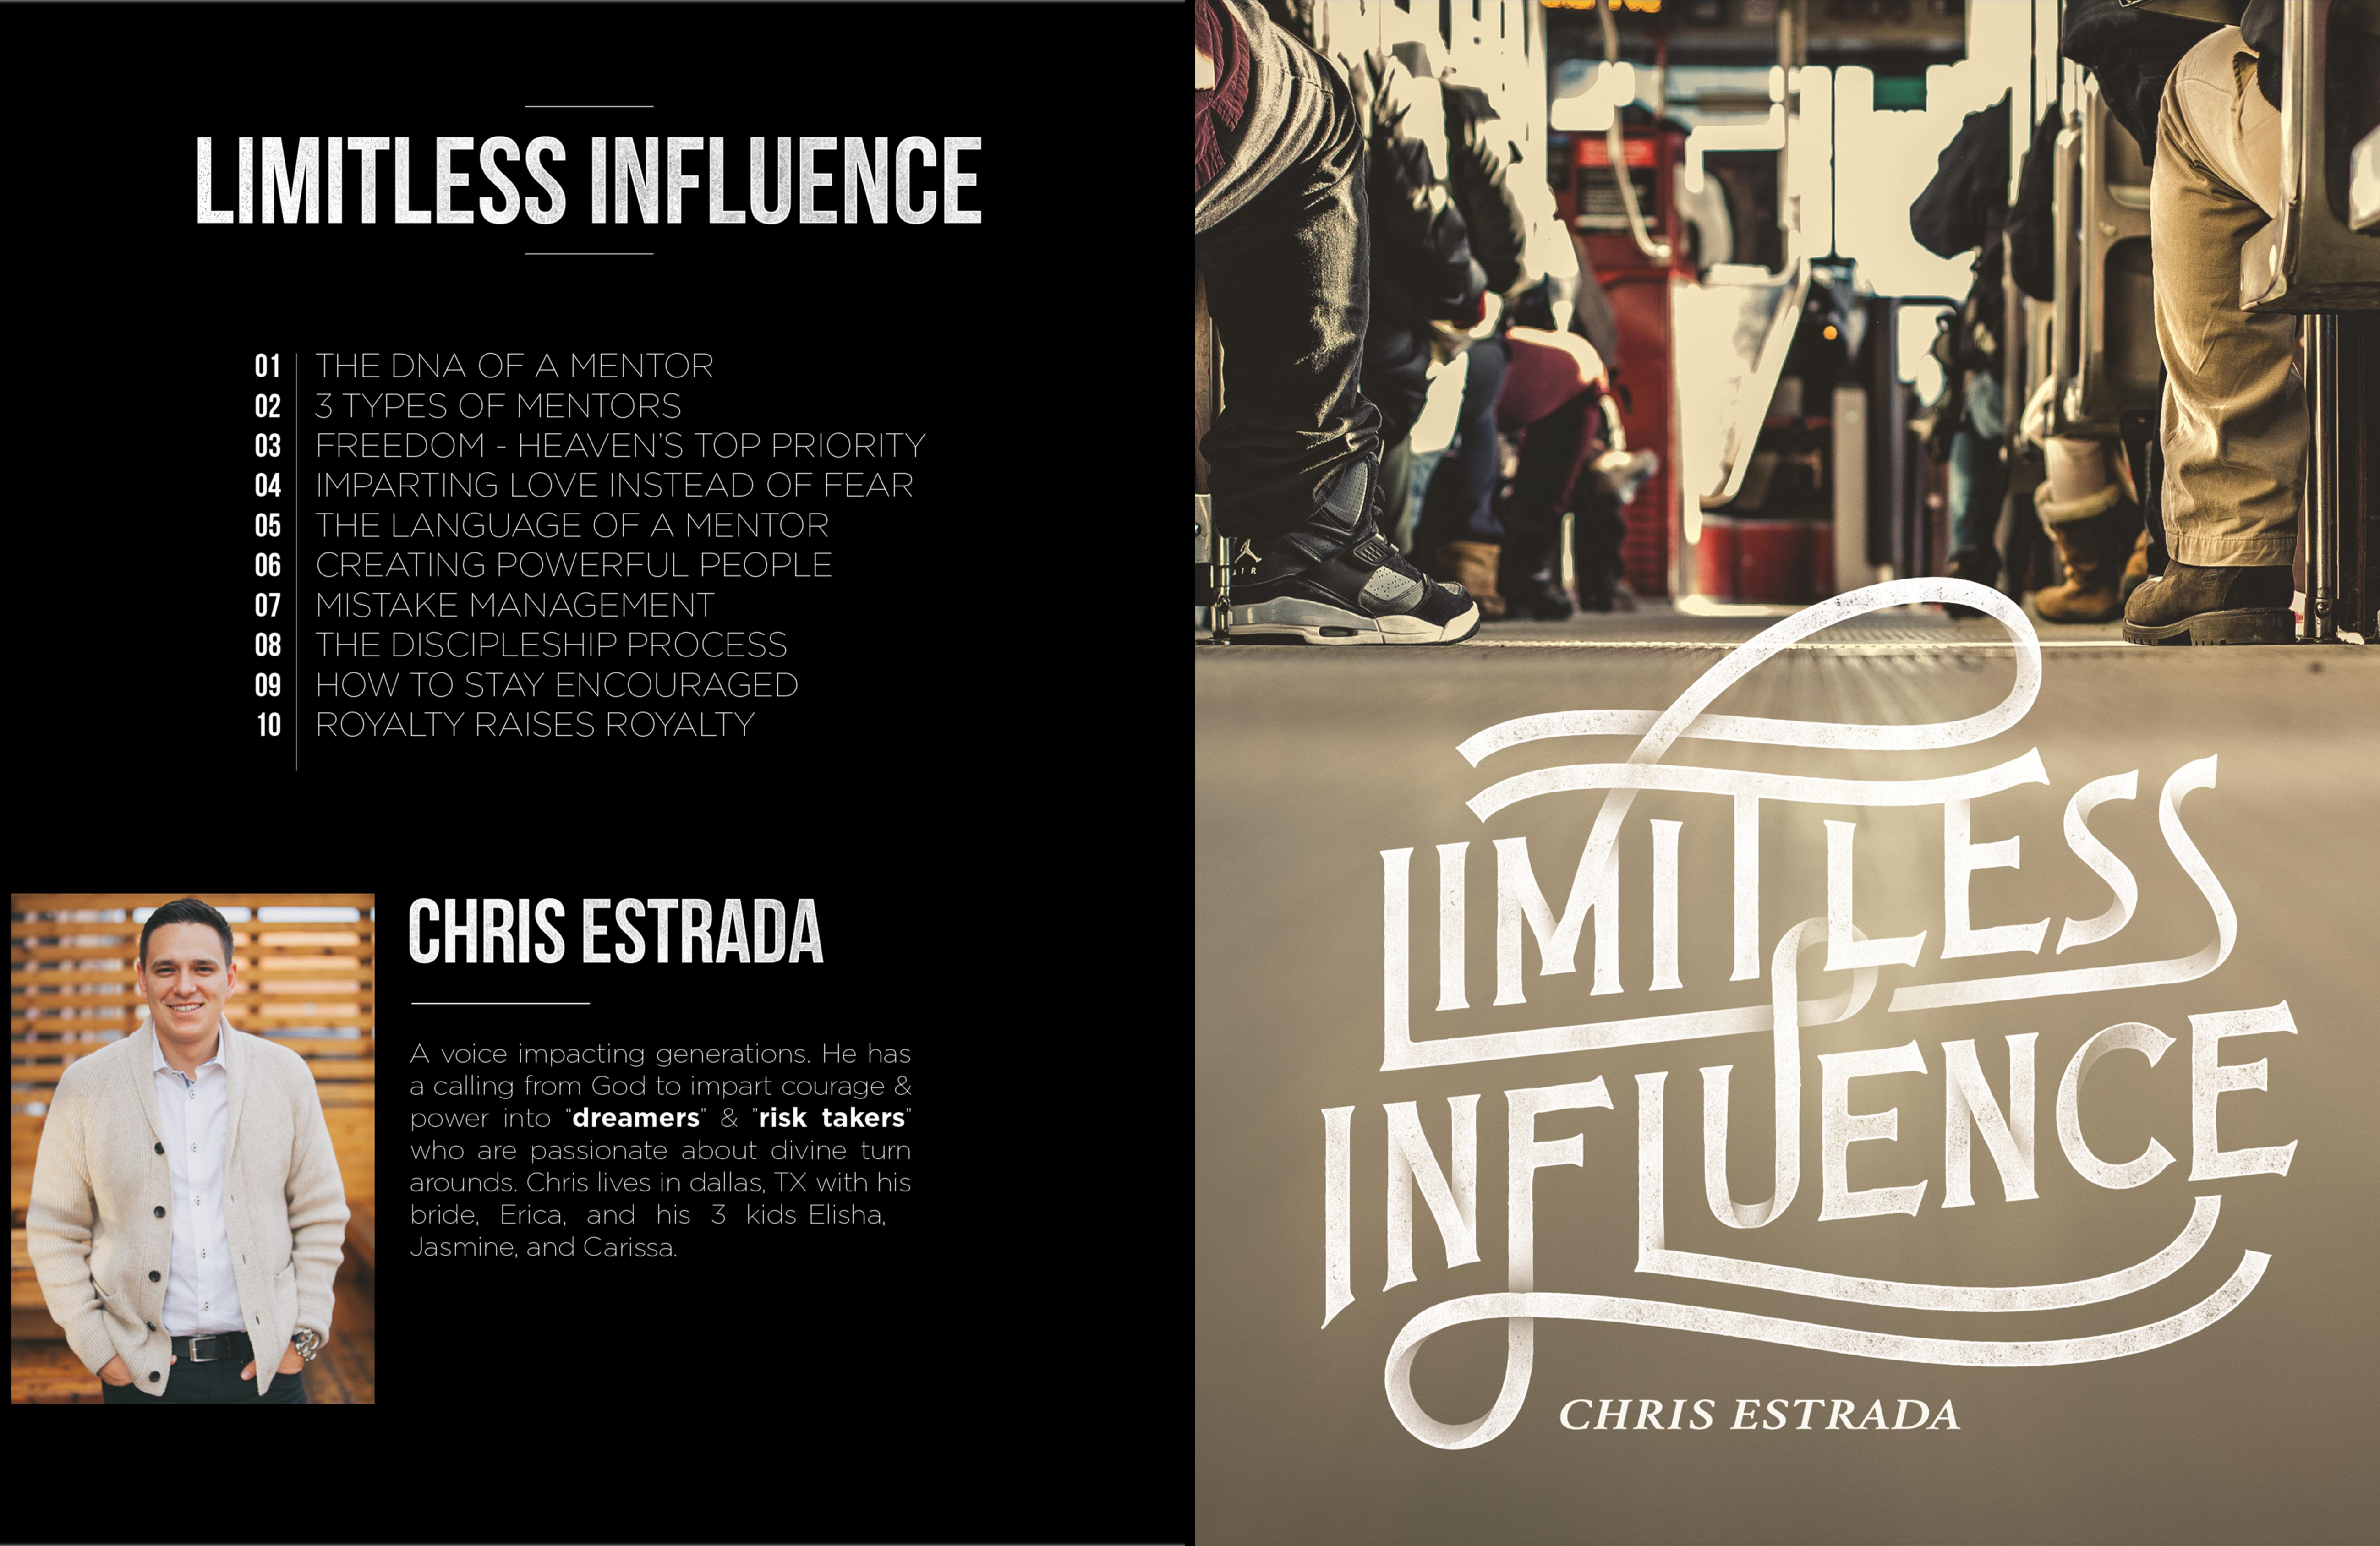 Limitless Influence cover image